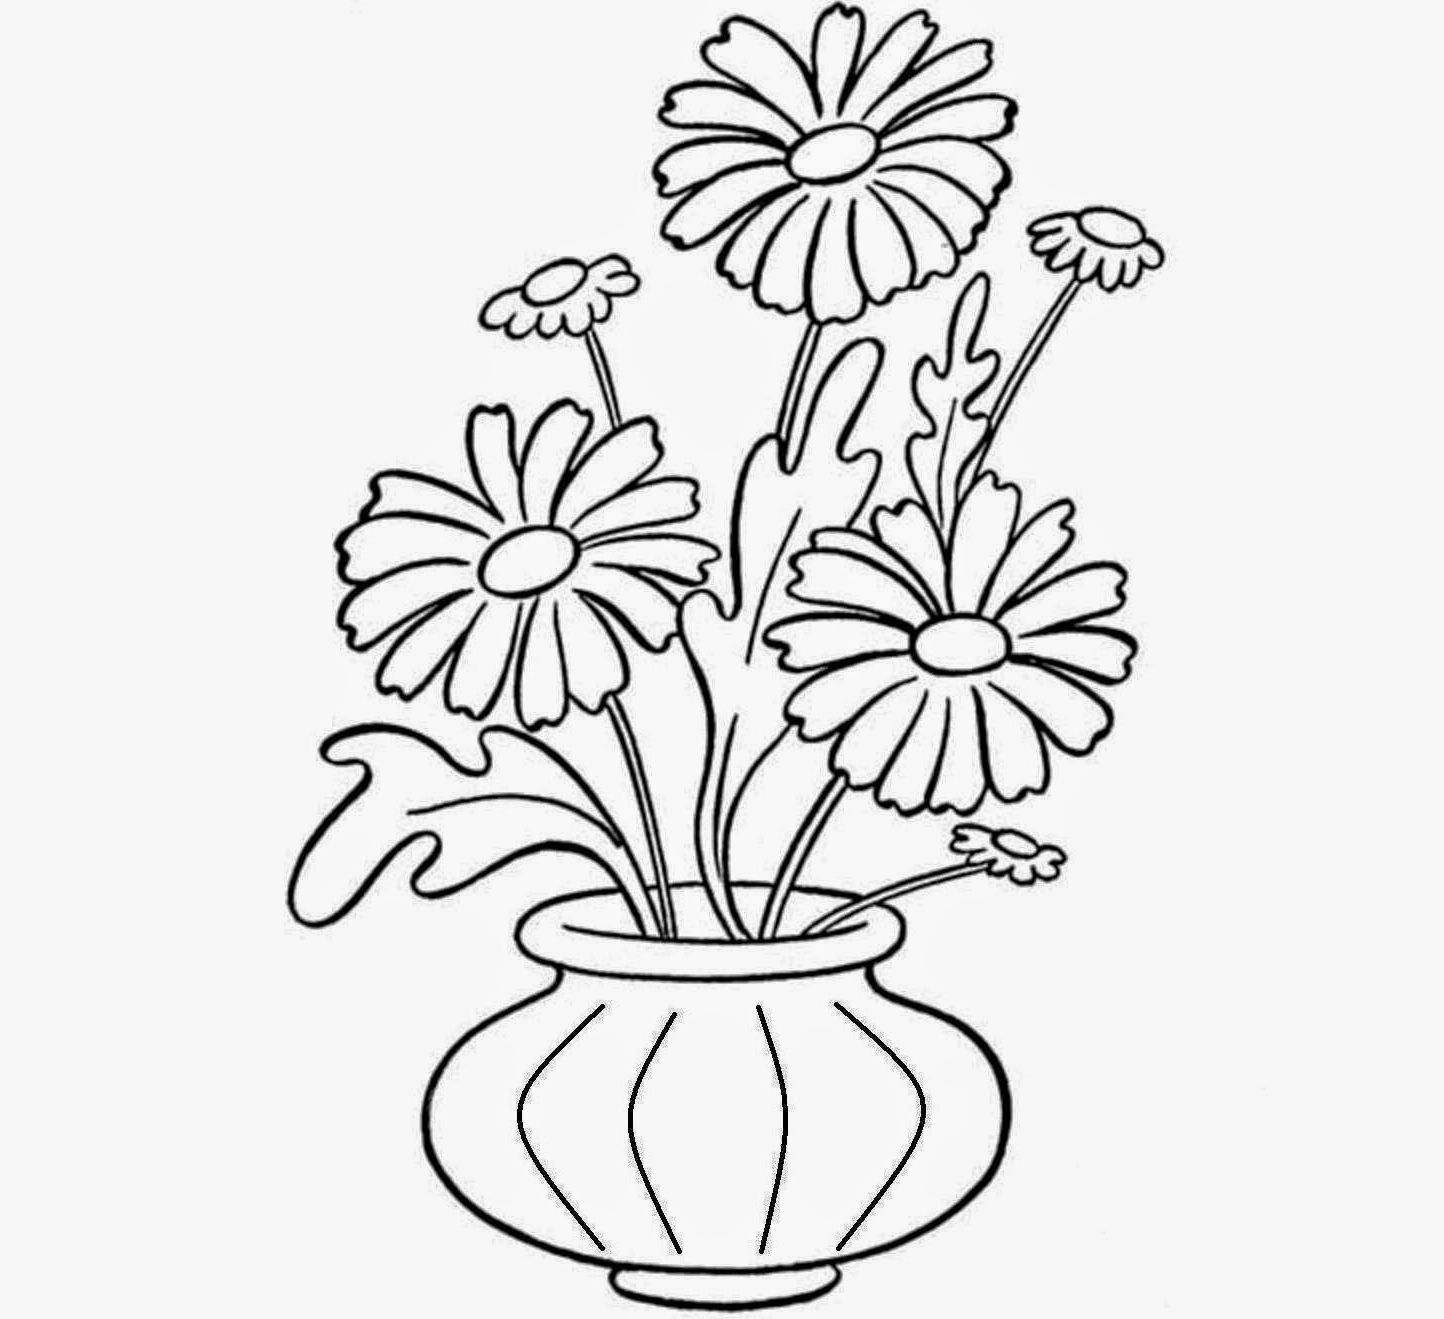 how to draw a bouquet of flowers in a vase realistic flowers drawing at getdrawings free download how of draw flowers in vase a to a bouquet